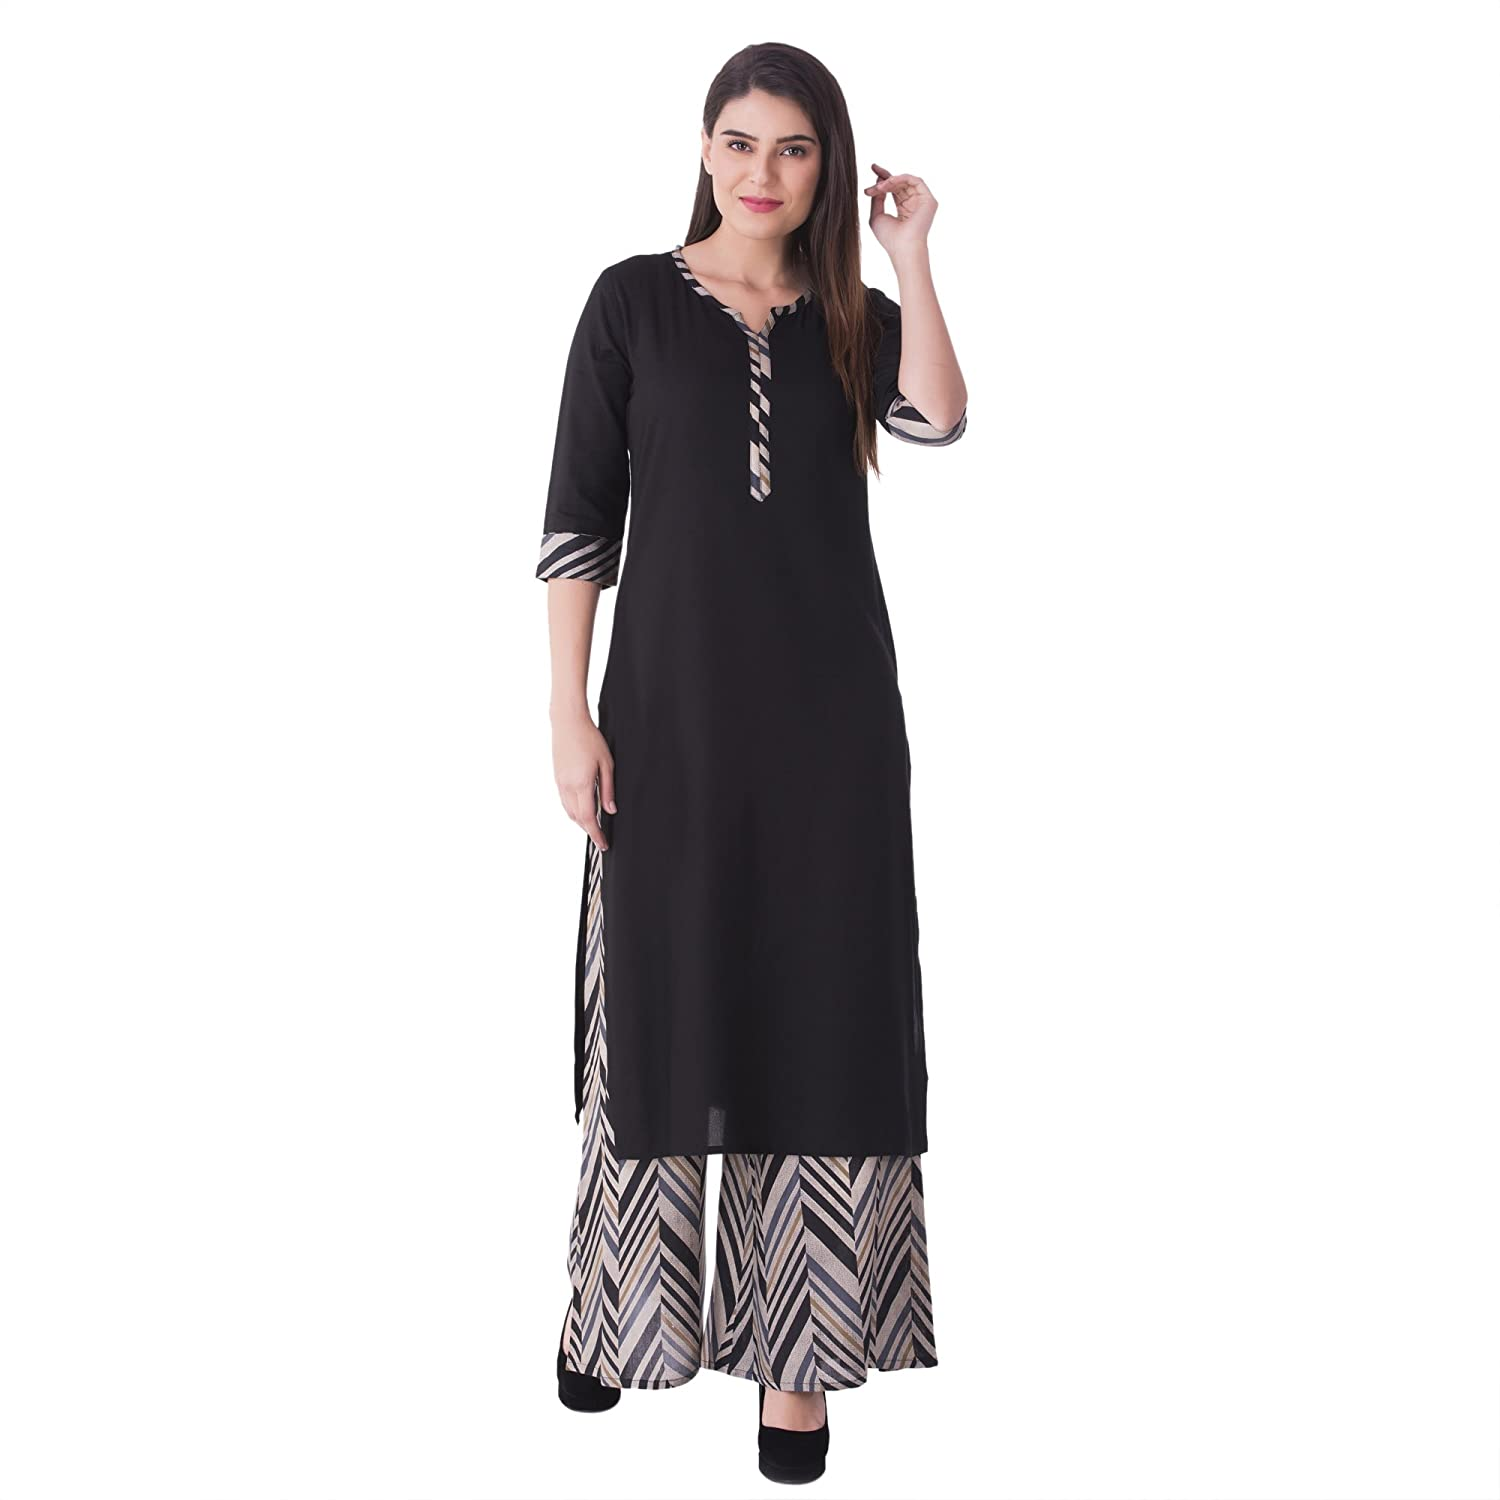 d1f98c50e2 KHUSHAL Women's Cotton Kurti with Palazzo Pant Set (Black, Small):  Amazon.in: Clothing & Accessories